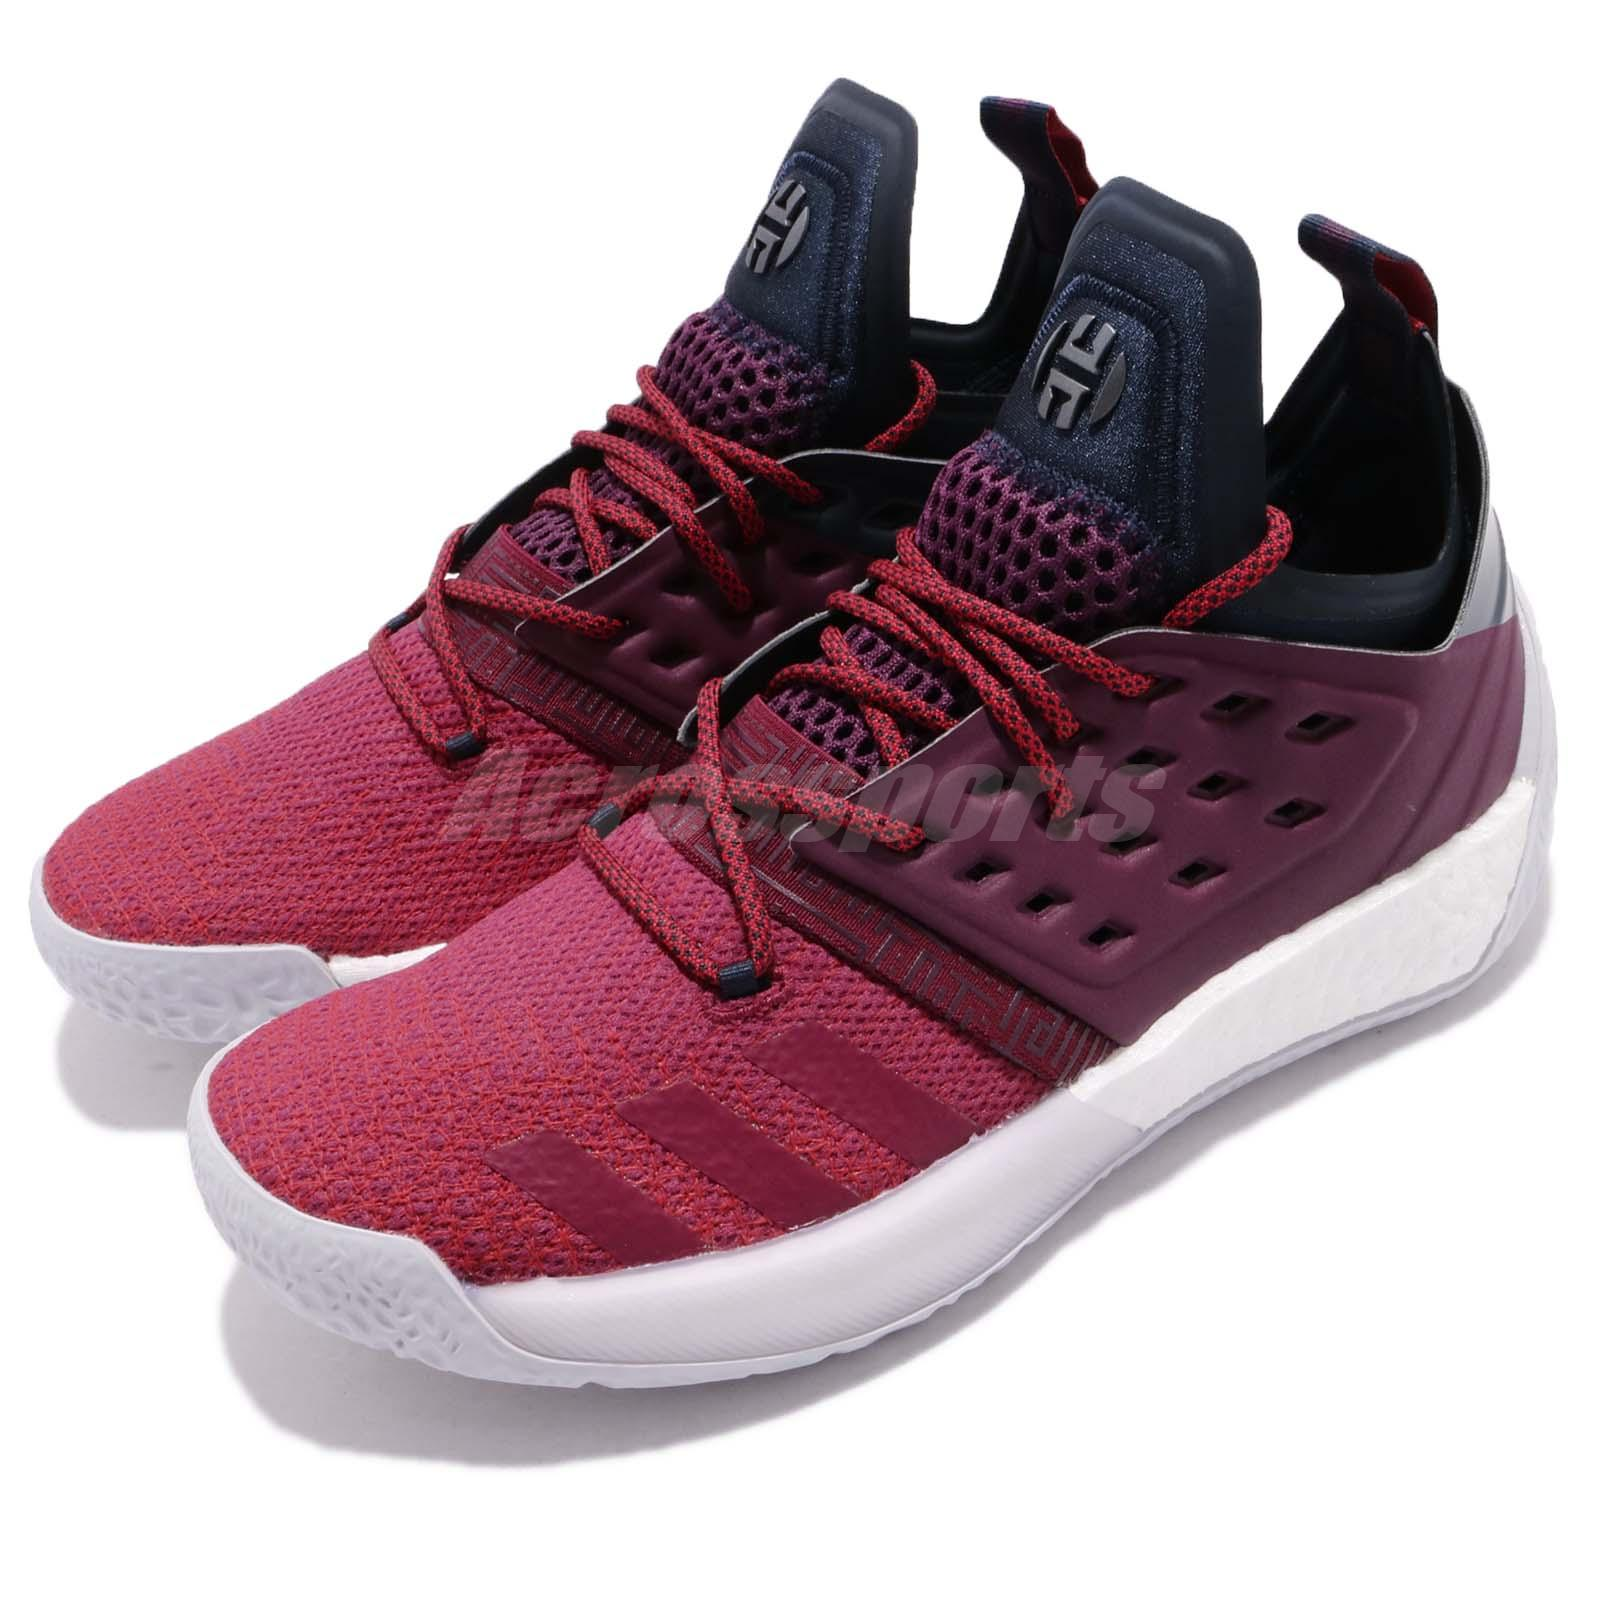 adidas harden vol 2 ignite ii james harden maroon red men basketball ah2124 ebay. Black Bedroom Furniture Sets. Home Design Ideas